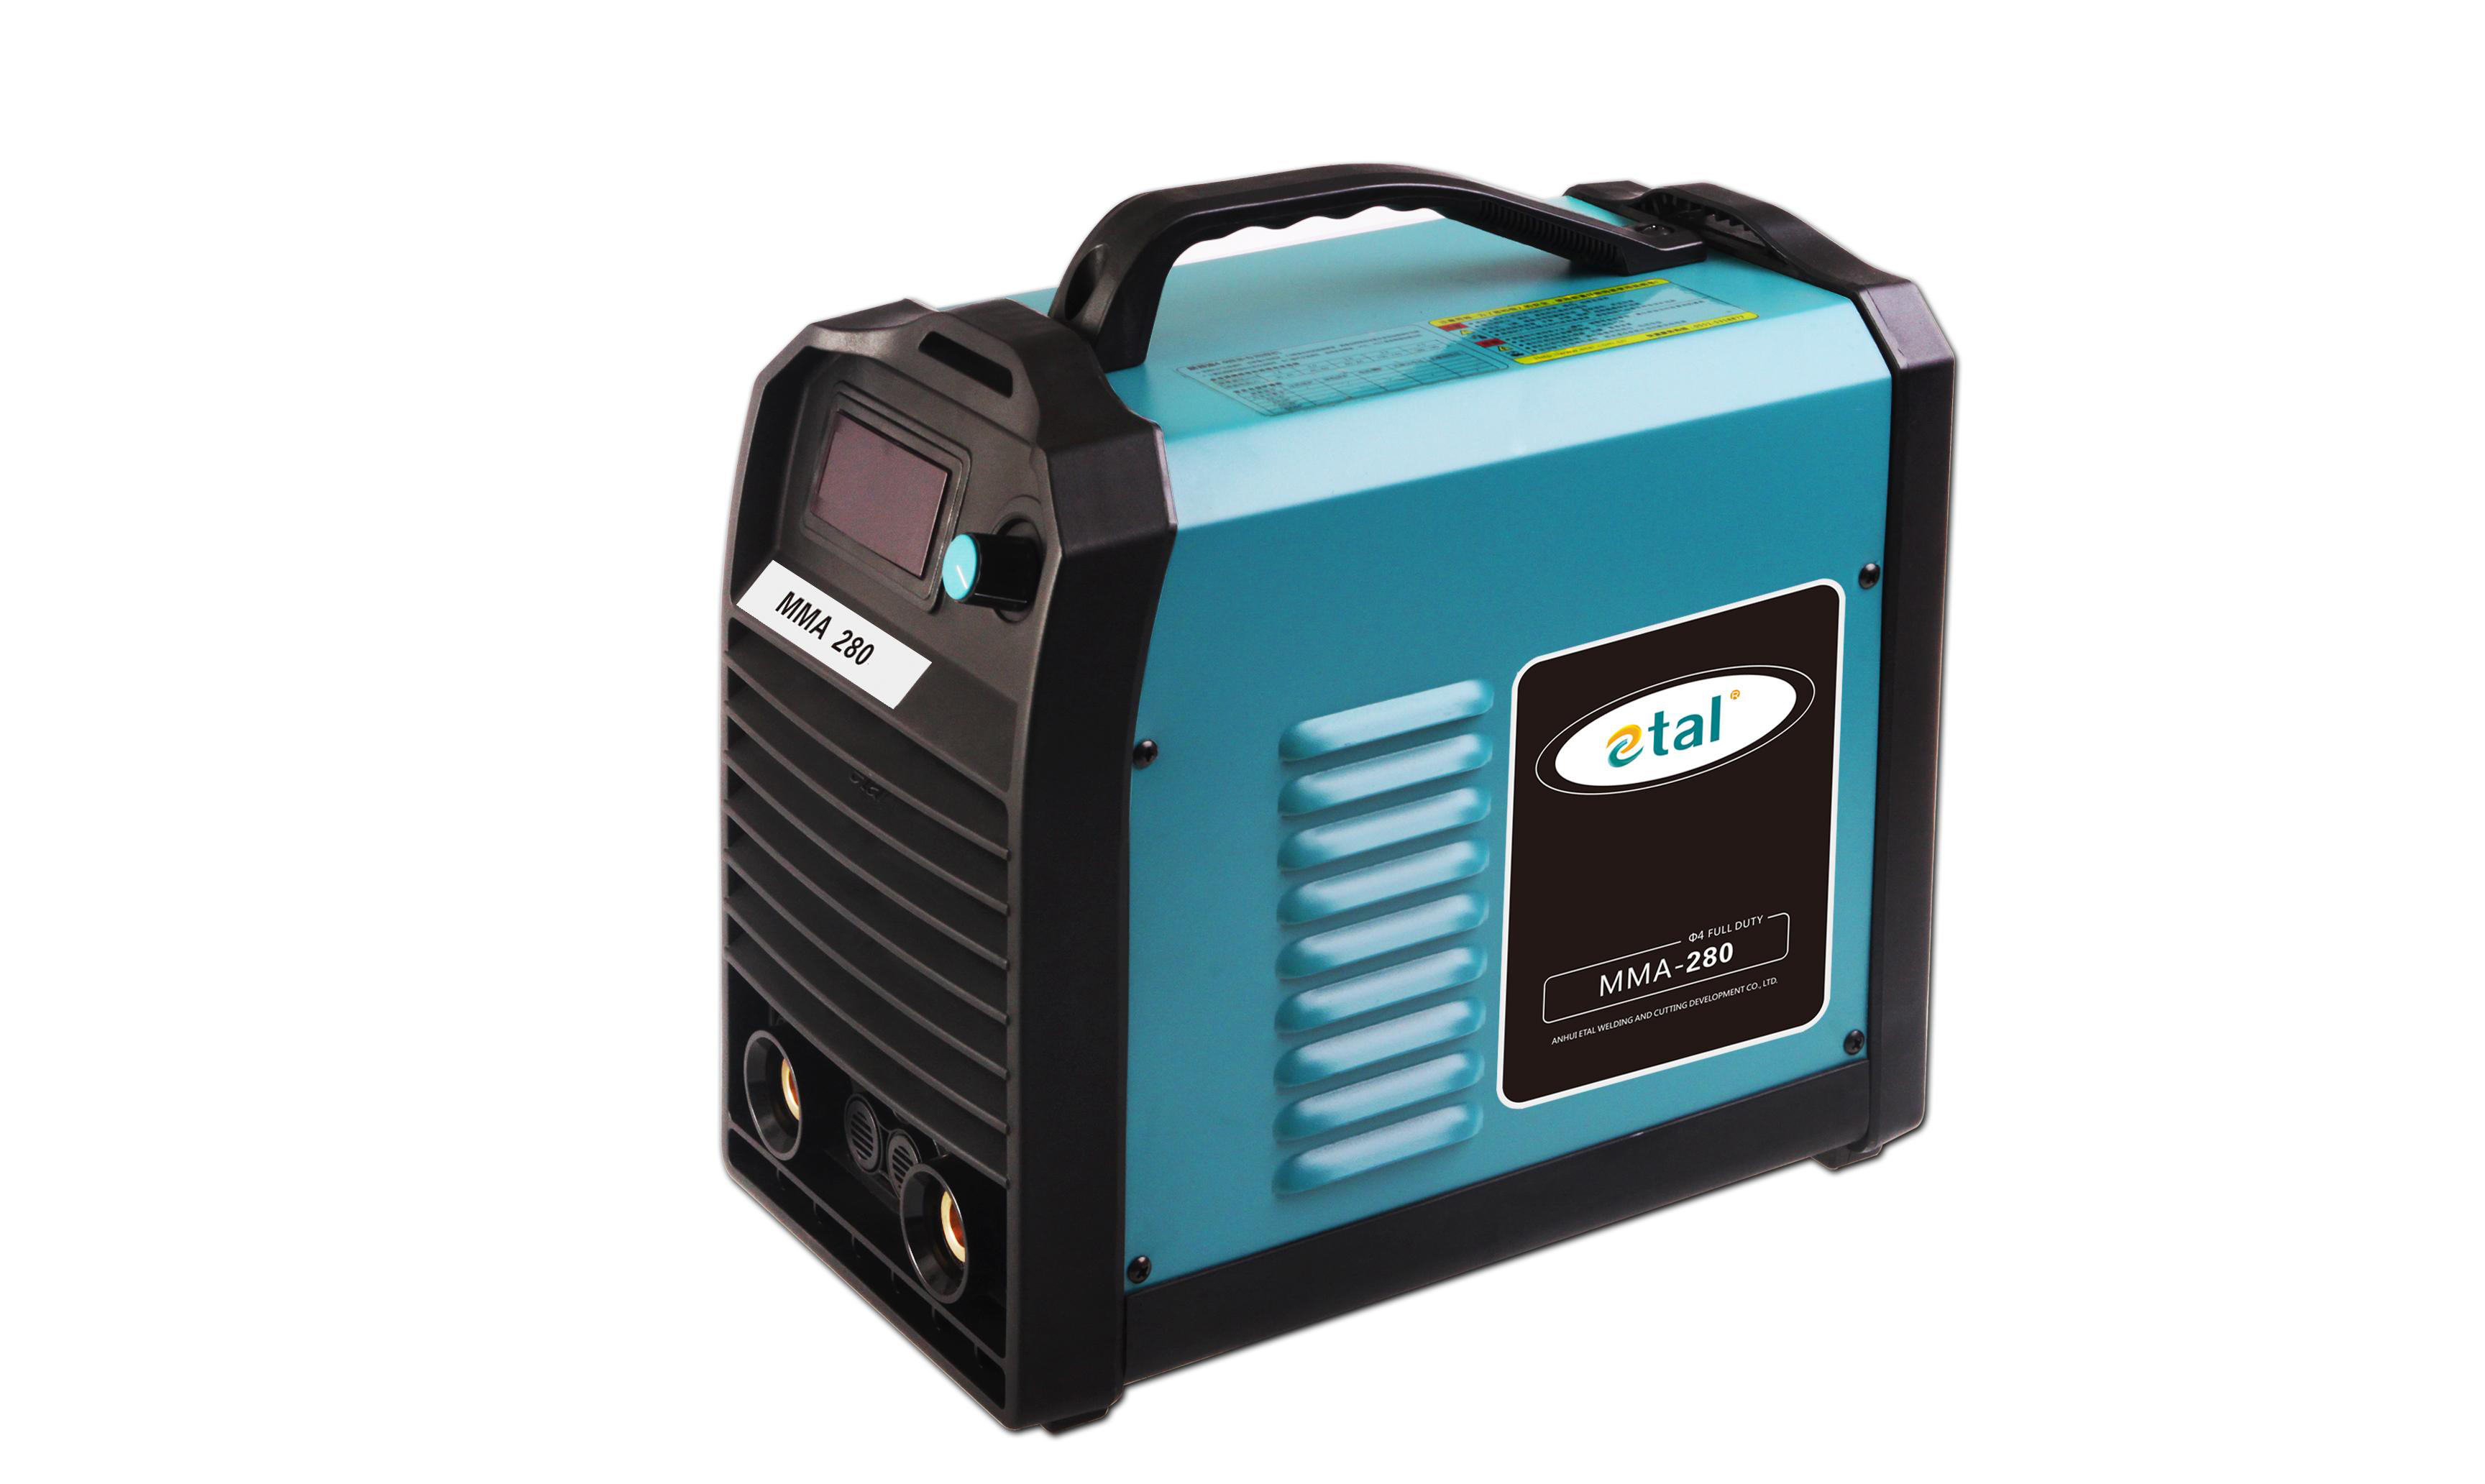 MMA280 Series DC Inverter Portable Arc Welder/Stick/Smaw Welding Machines